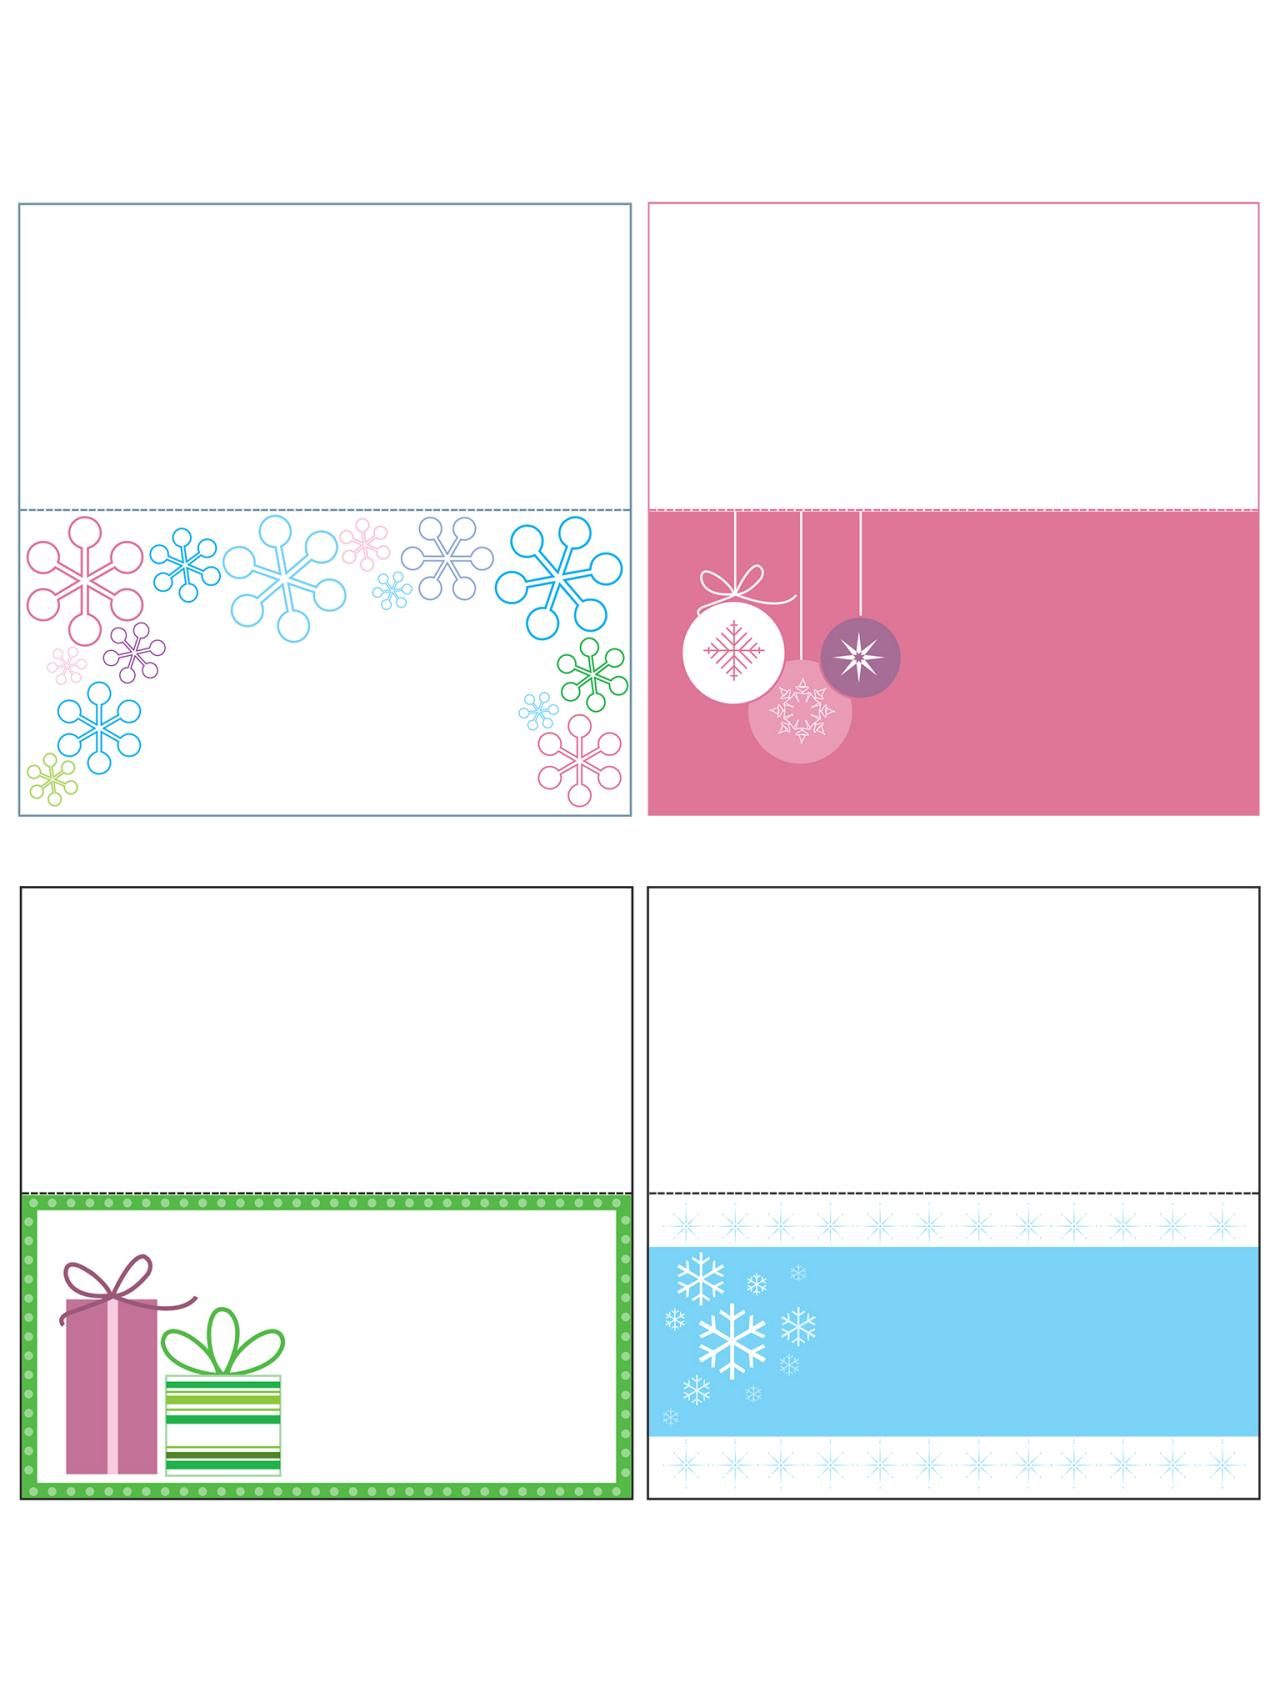 image about Christmas Tag Free Printable called Cost-free Xmas Templates: Printable Present Tags, Playing cards, Crafts